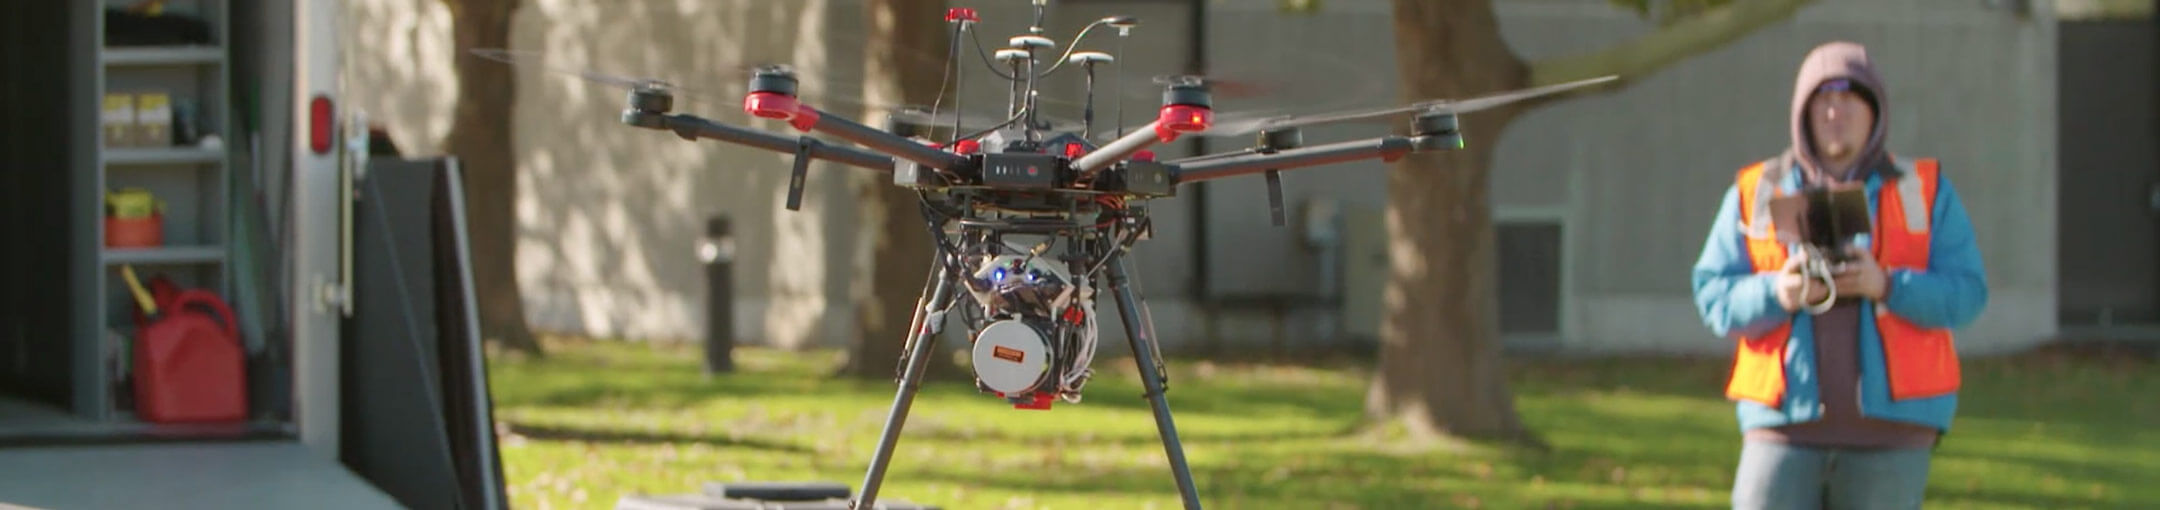 A drone pilot flying a drone with sensors on it